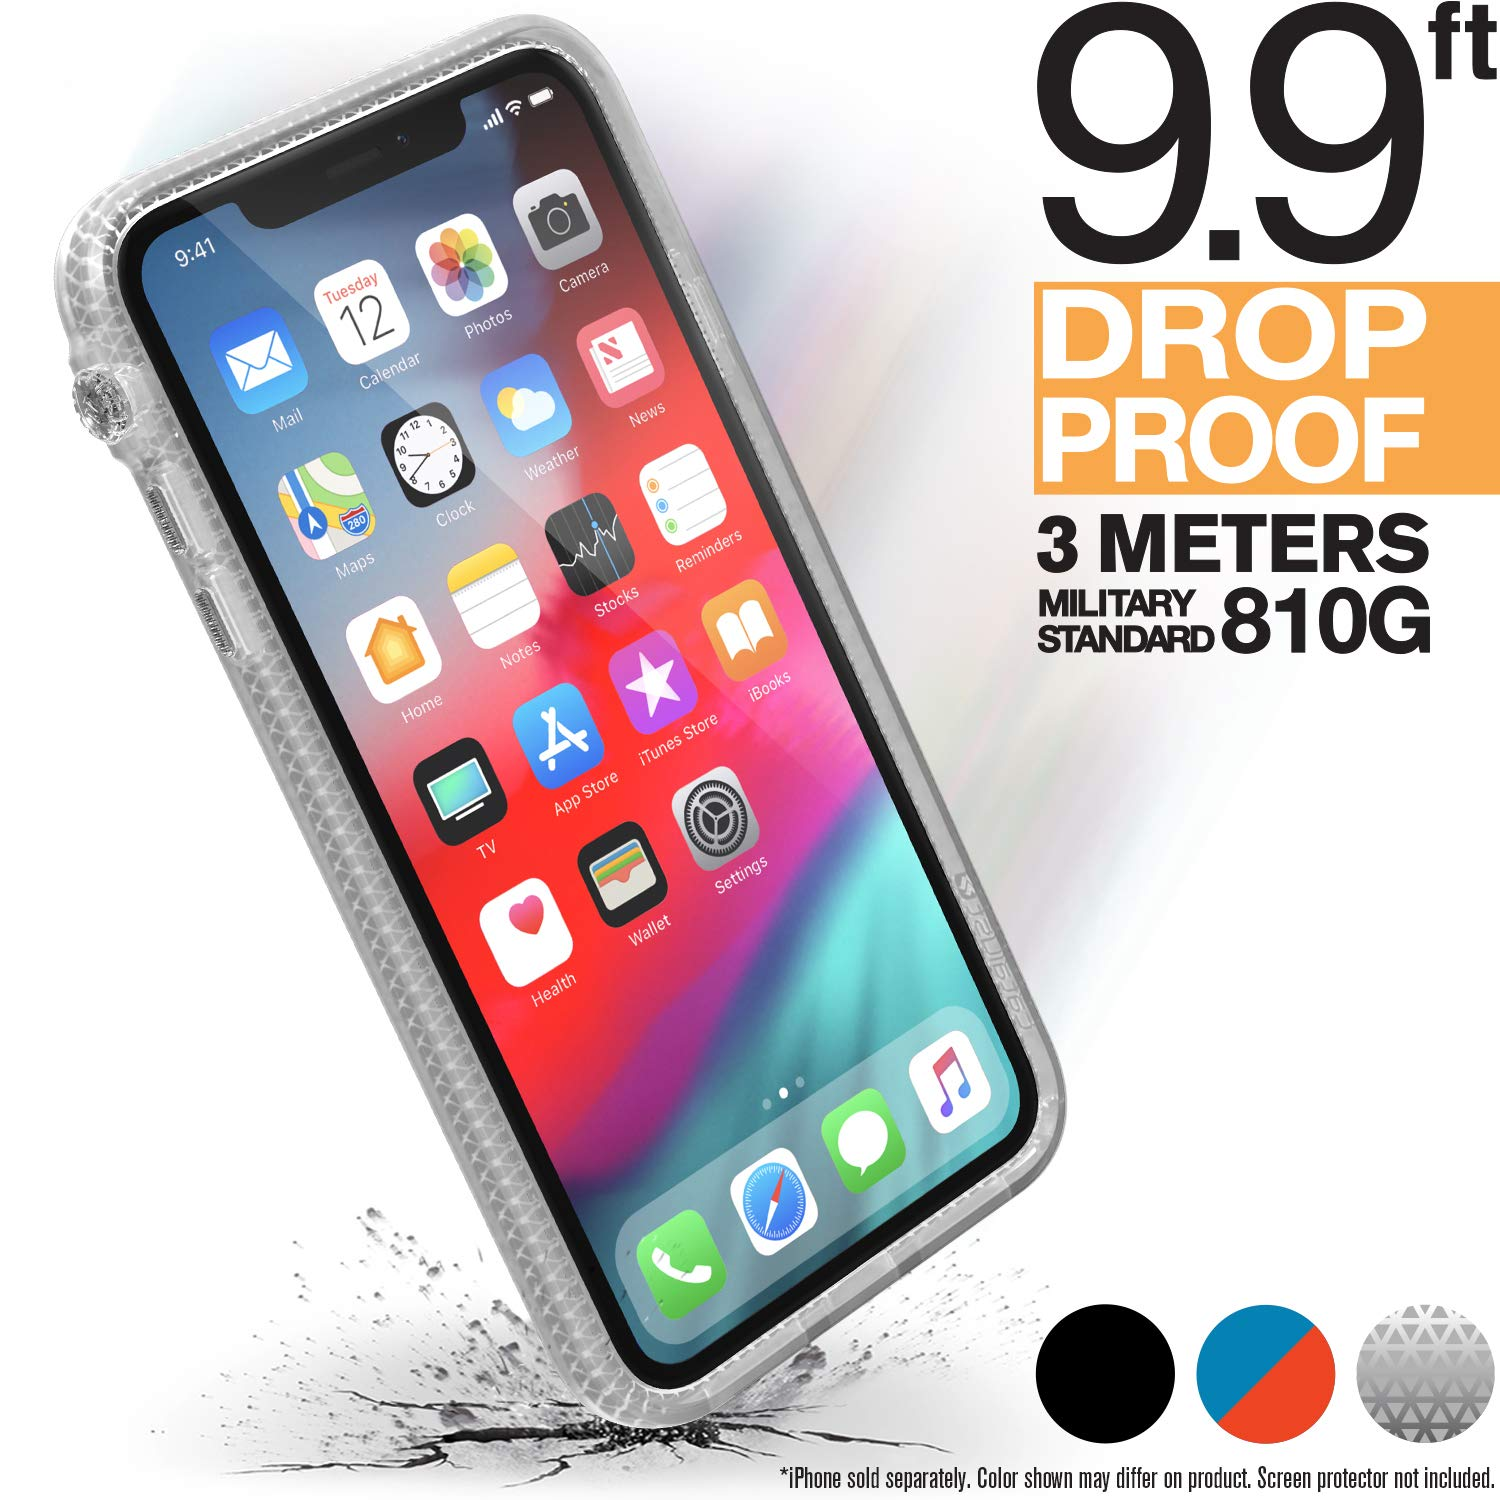 Catalyst iPhone XR Clear Case Impact Protection, Military Grade Drop and Shock Proof Premium Material Quality, Heavy Duty, Slim Design, Clear by Catalyst